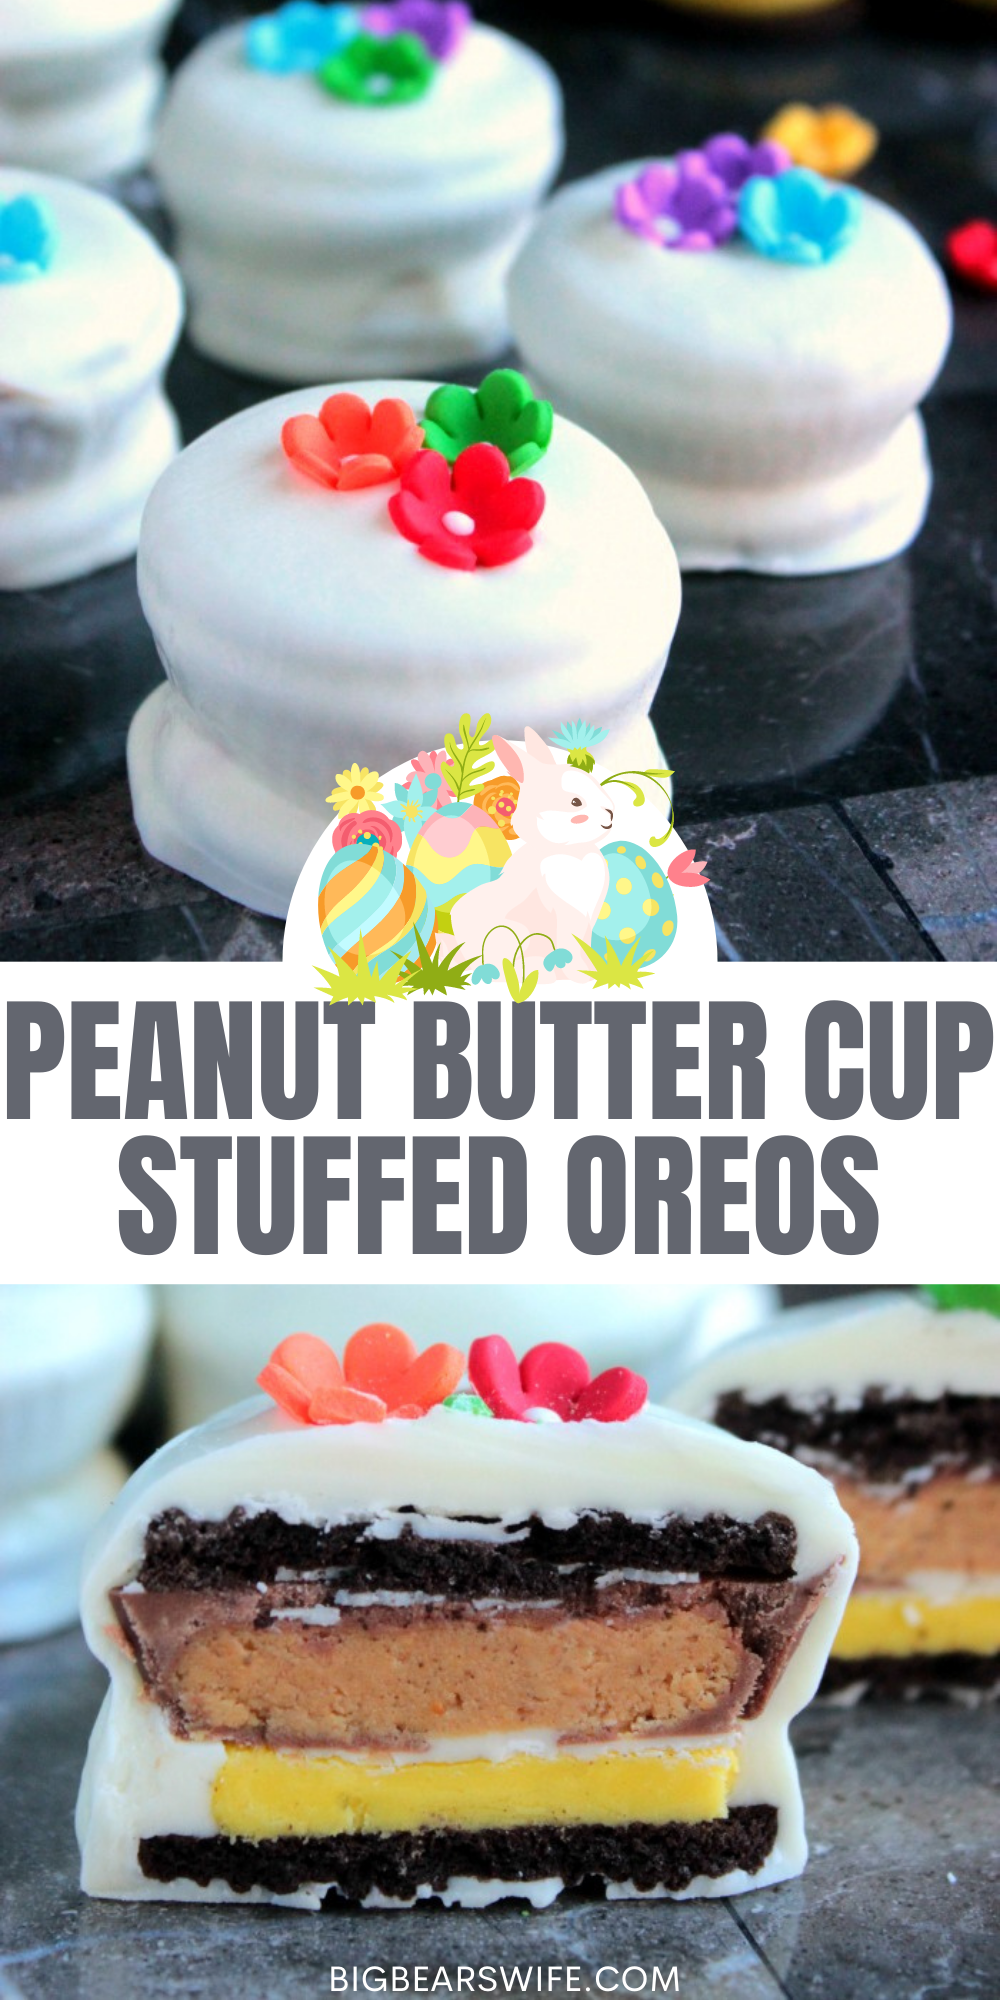 Springtime Easter Reese Stuffed Oreos have the sweetness from the chocolate, the crunch from the cookie and a creaminess from the peanut butter! Topped with little sugar flowers, they're just perfect for Easter and Spring! via @bigbearswife